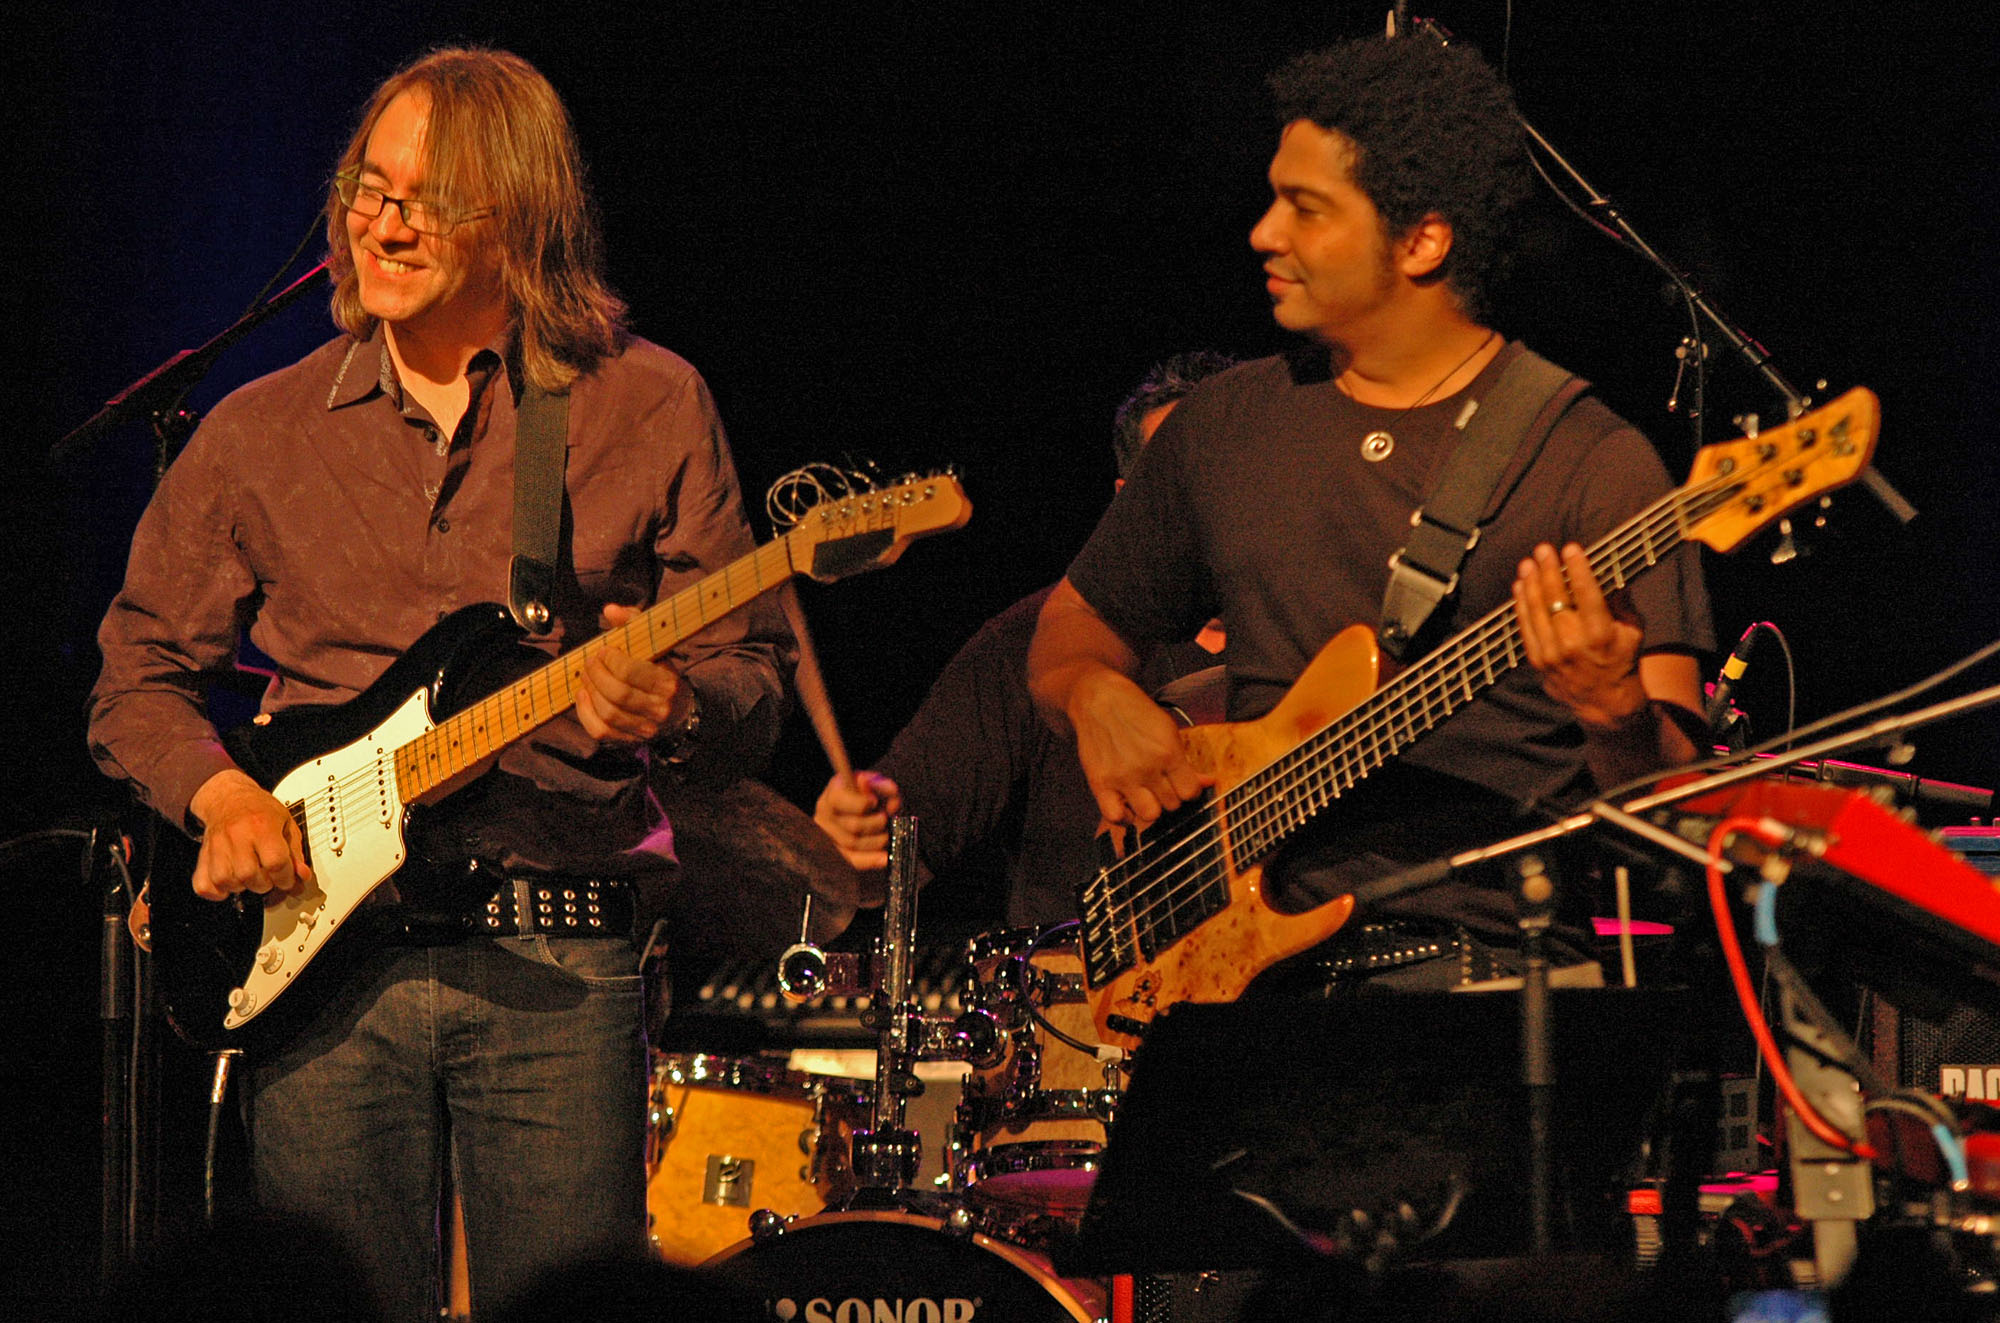 Wayne Krantz and Matthew Garrison, Performing with Ranjit Barot at the New Universe Music Festival 2010